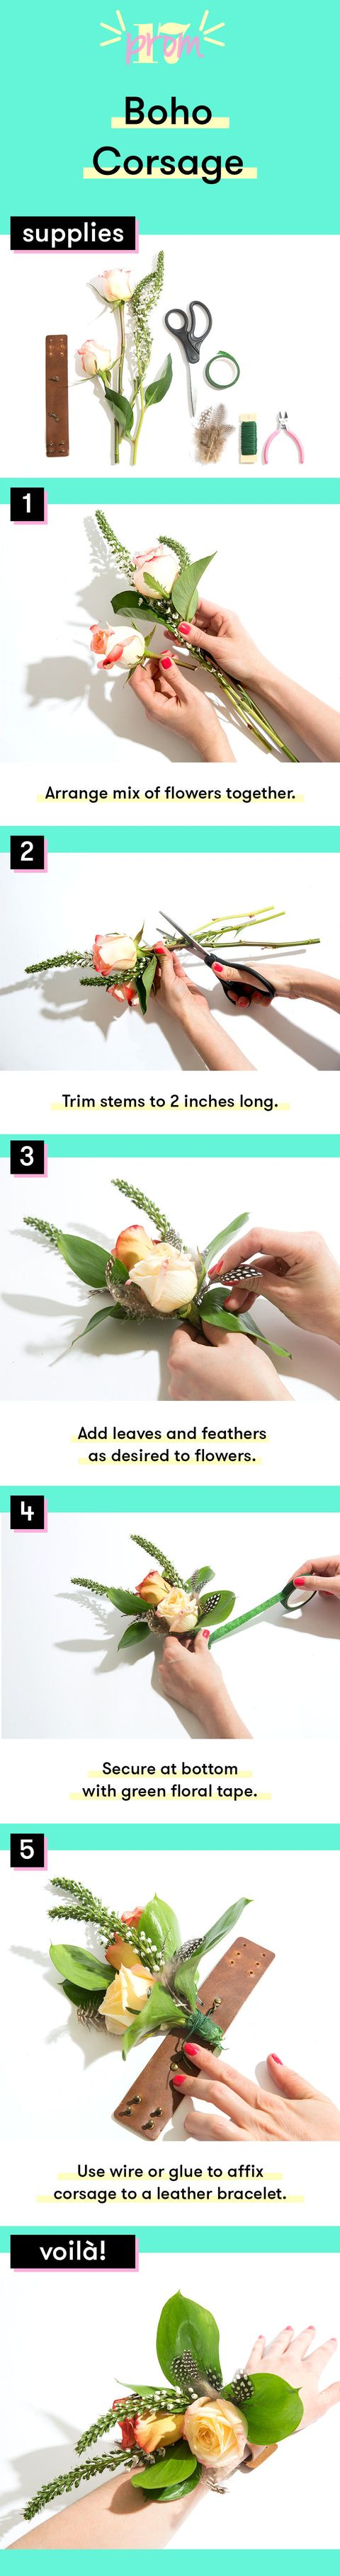 How To Make A Prom Corsage 7 Diy Ideas For Corsages Boutonnieres